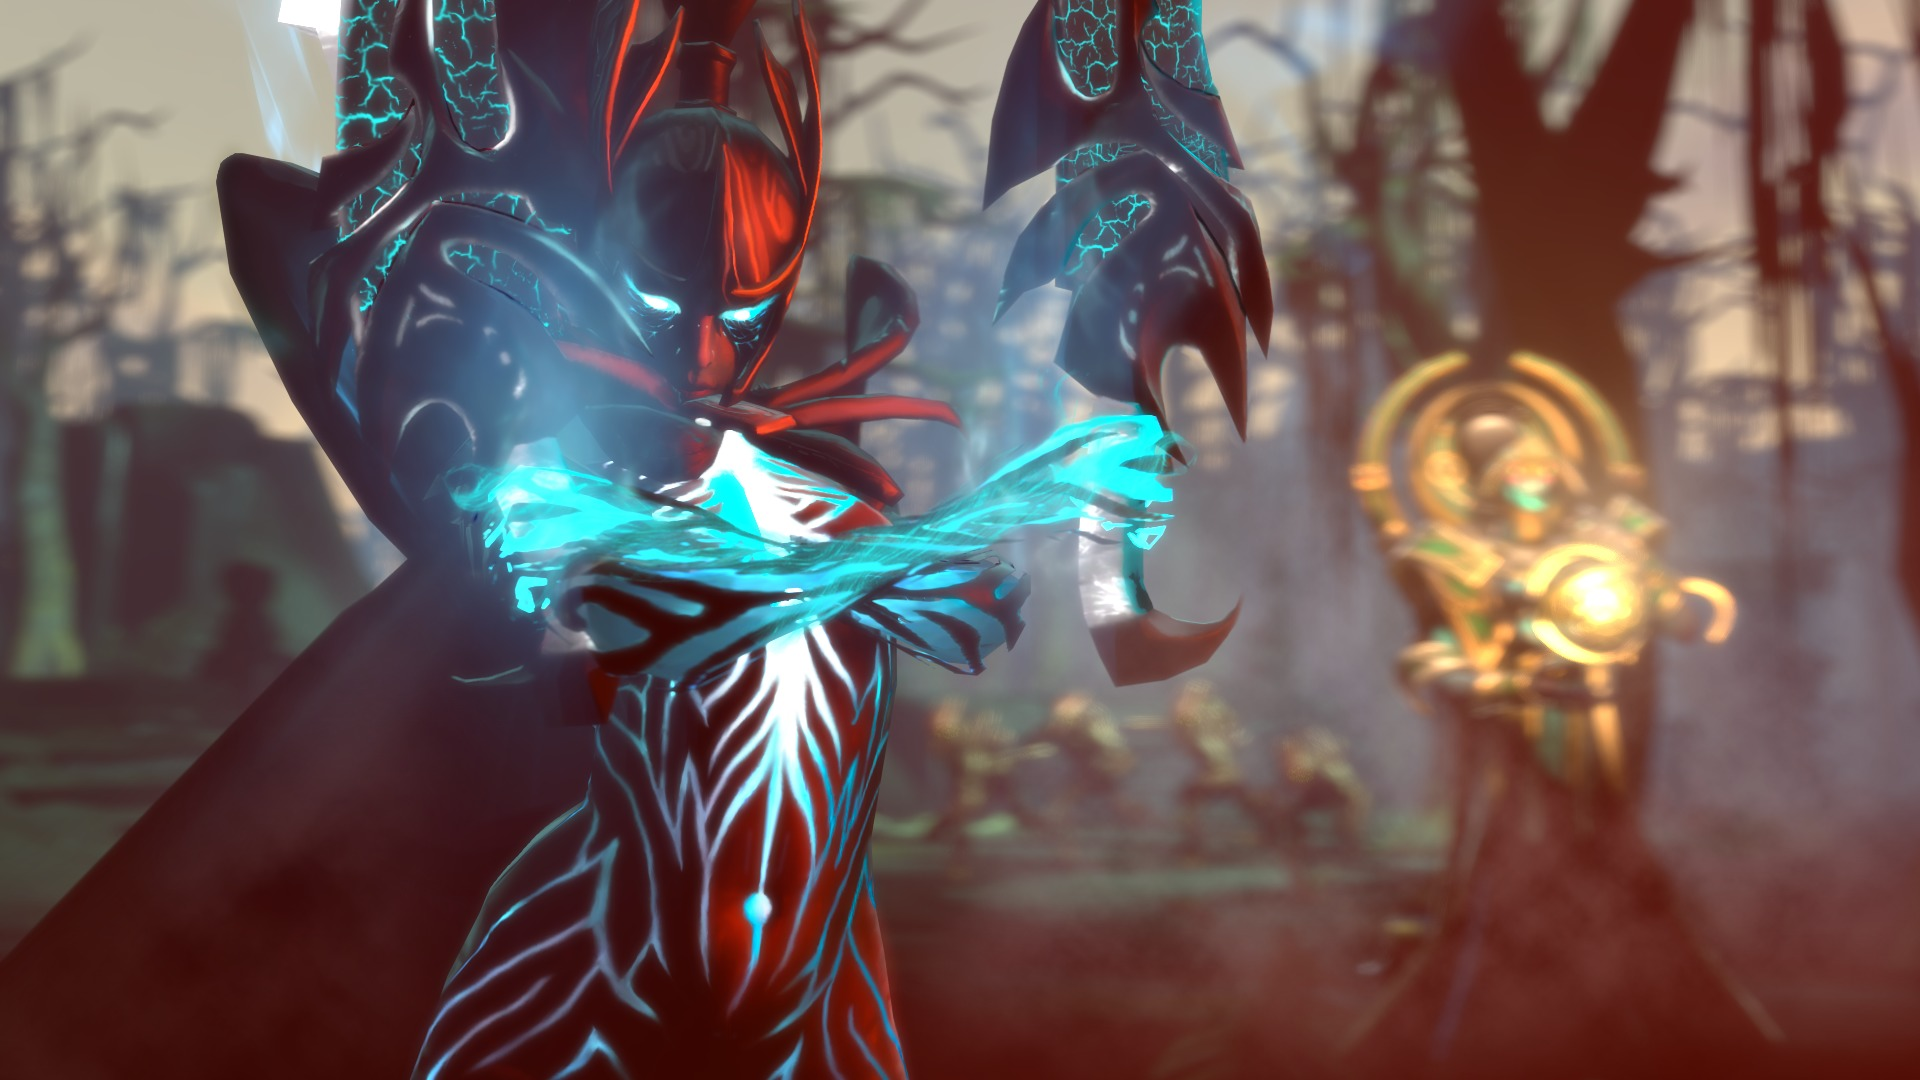 Oracle arcana phantom assassin dota 2 wallpapers HD